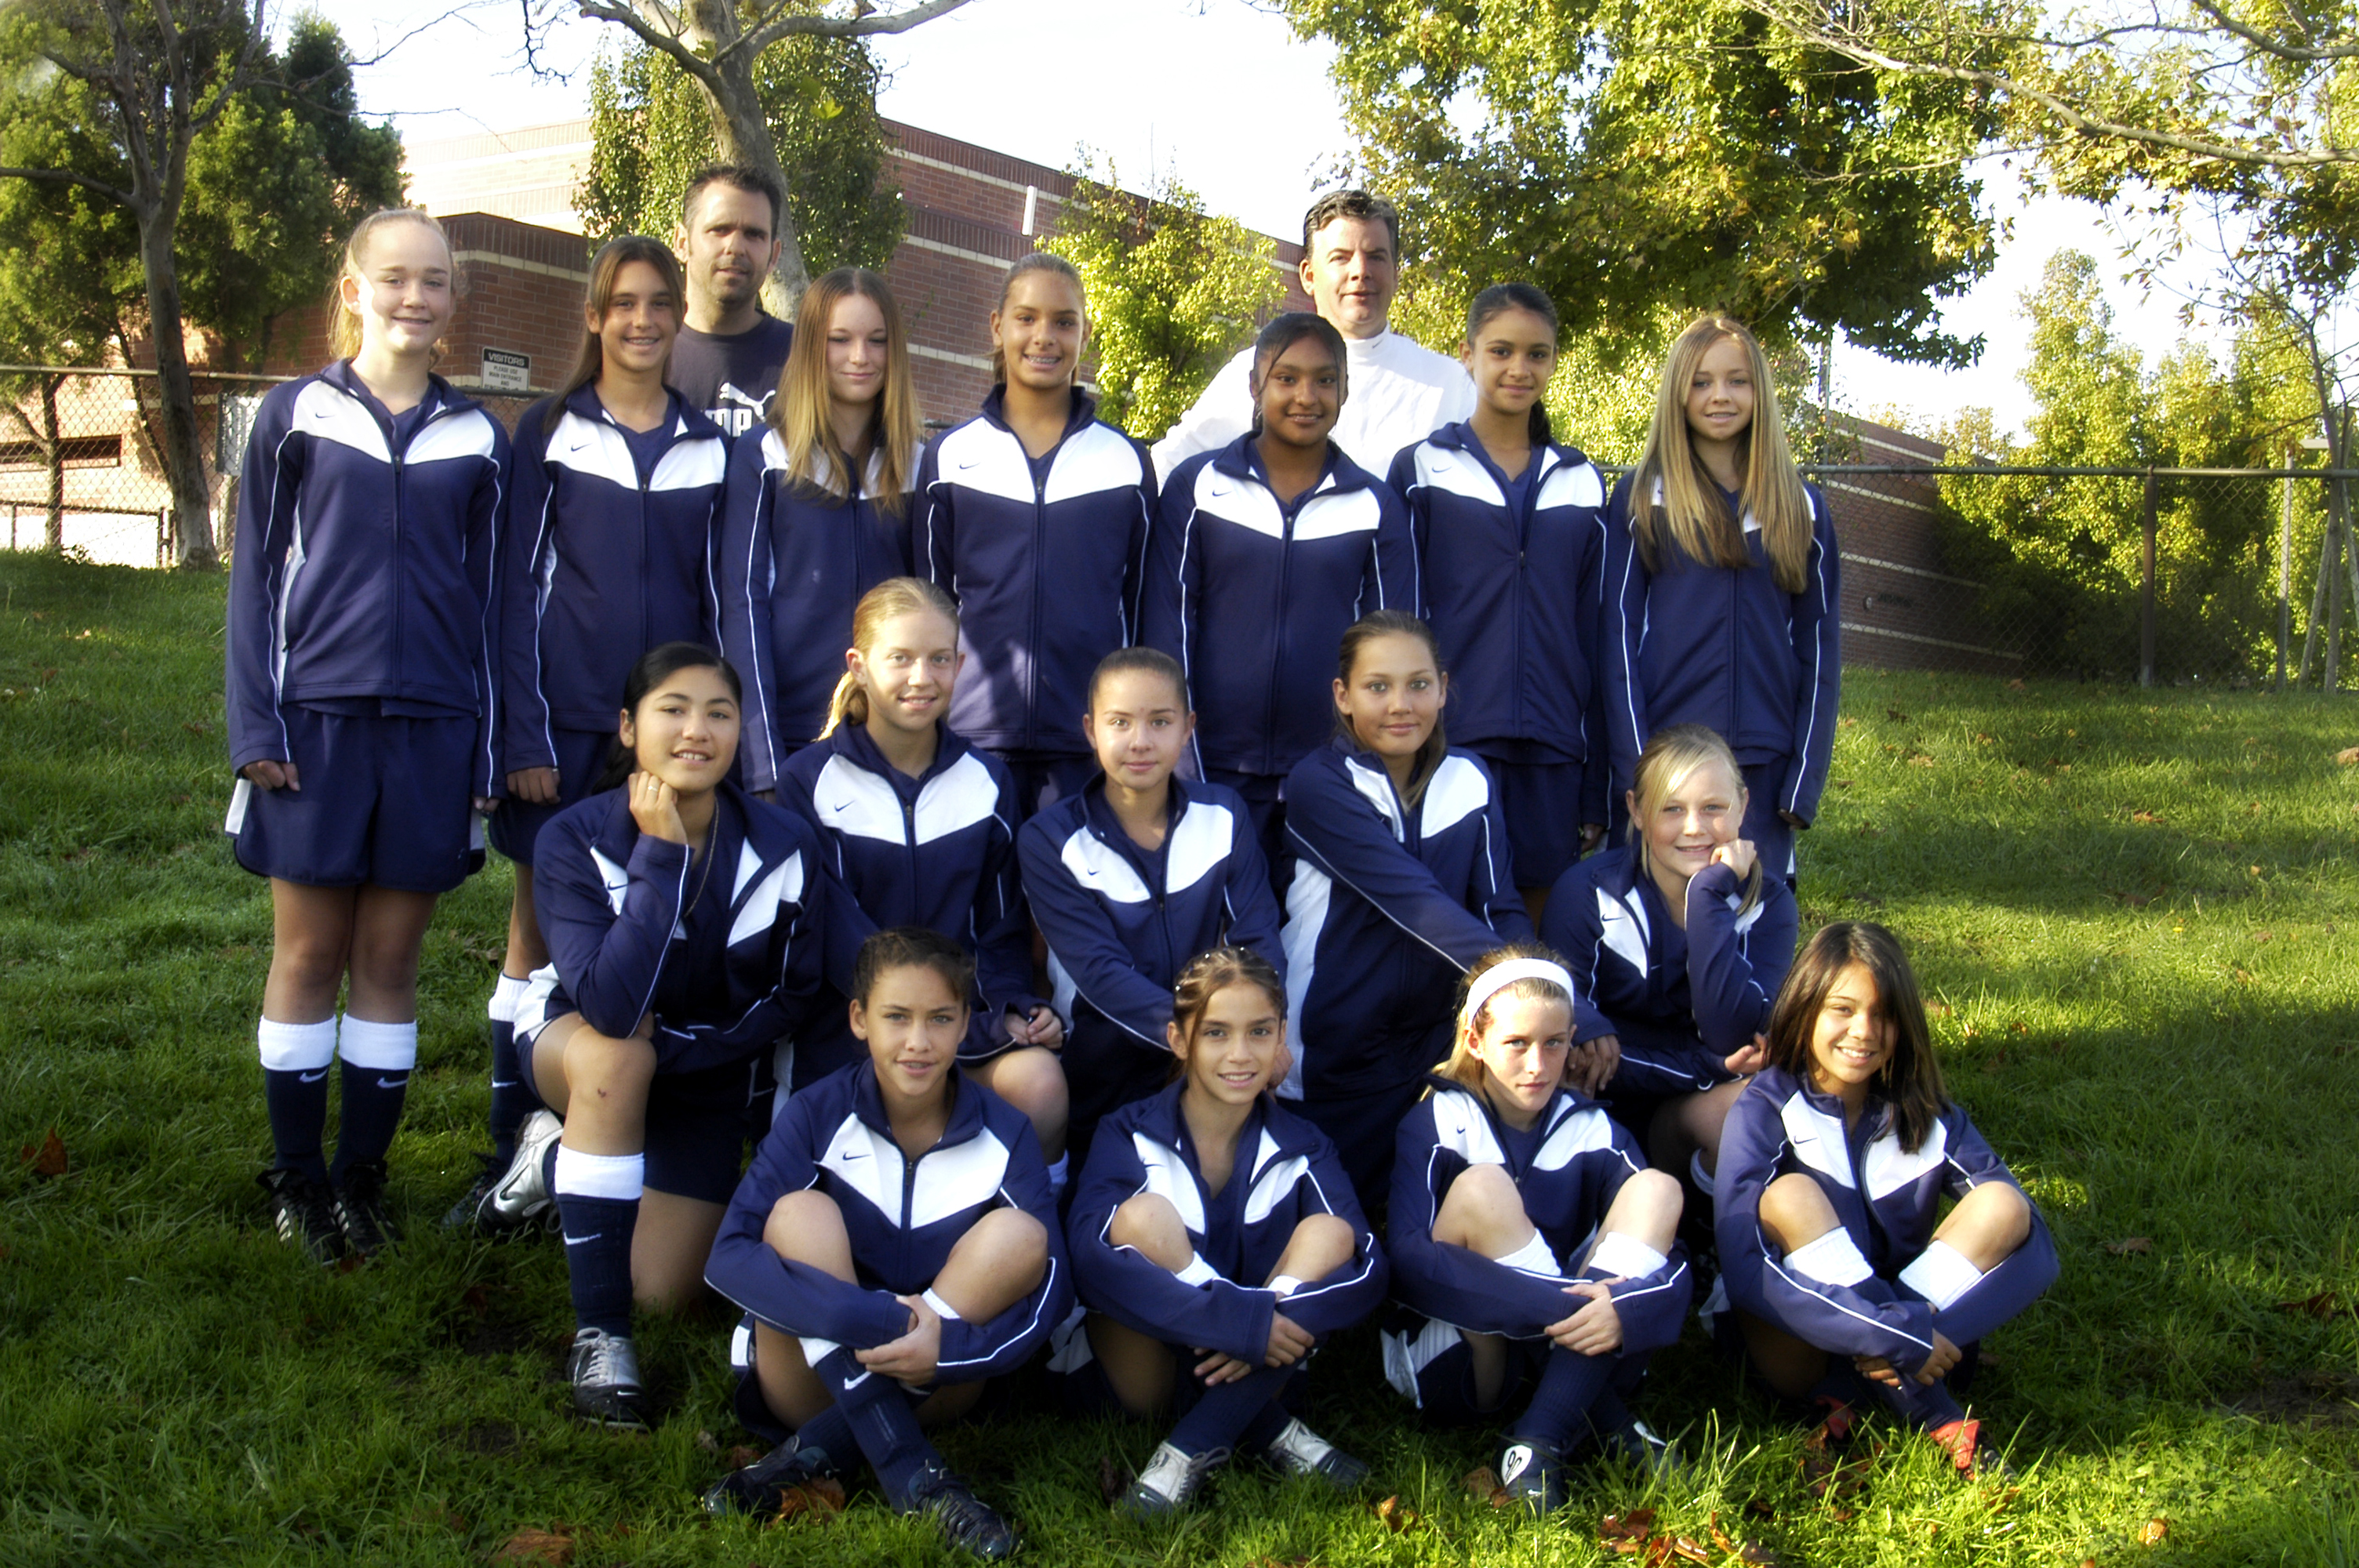 NorCal Premier Flame Soccer Team